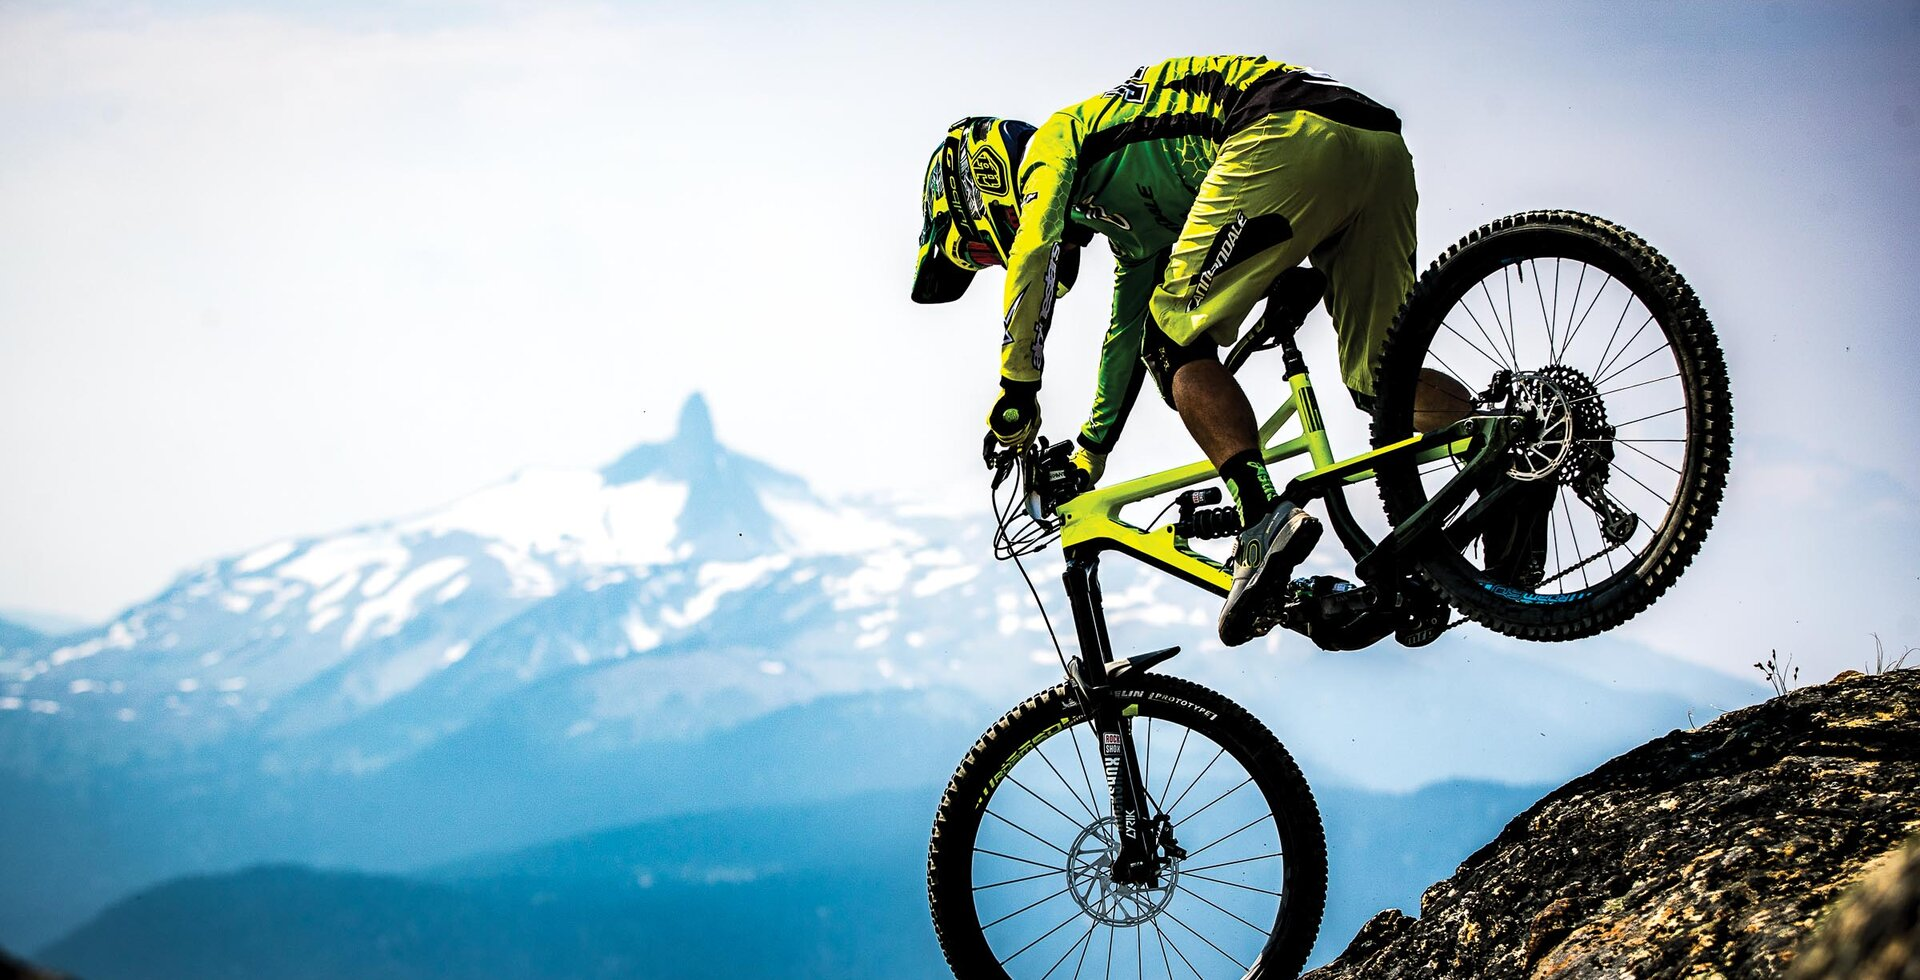 Blue skies and majestic Whistler Valley views aren't always standard during the Whistler Enduro World Series, but when conditions align, it's epic. France's Jerome Clementz claimed eigth place in 2017, but not without some technical maneuvers on Top of the World.